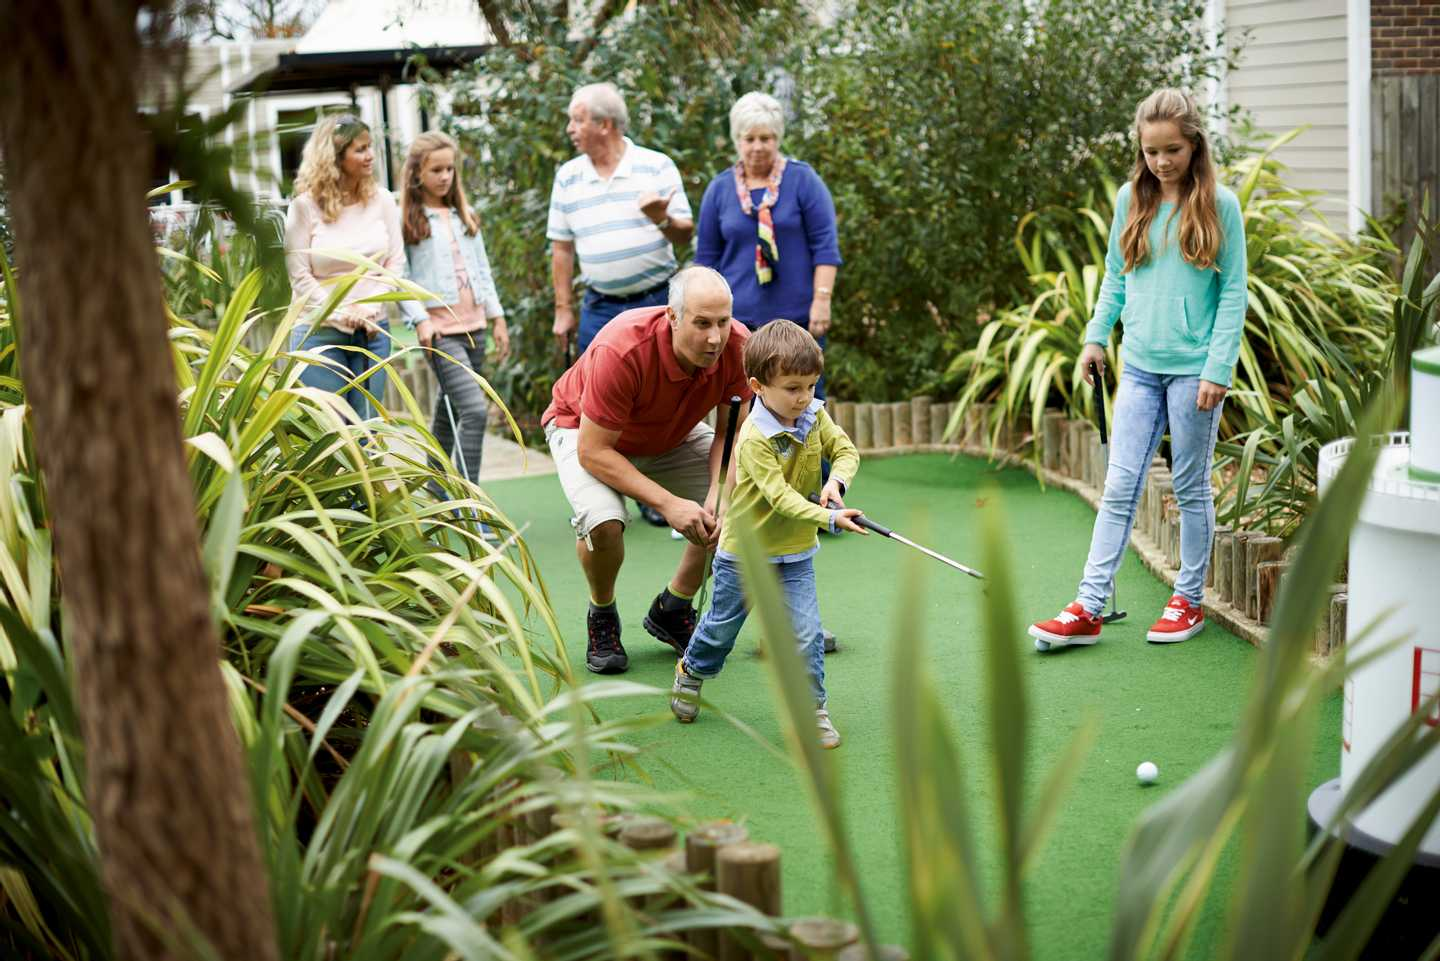 A family playing crazy golf